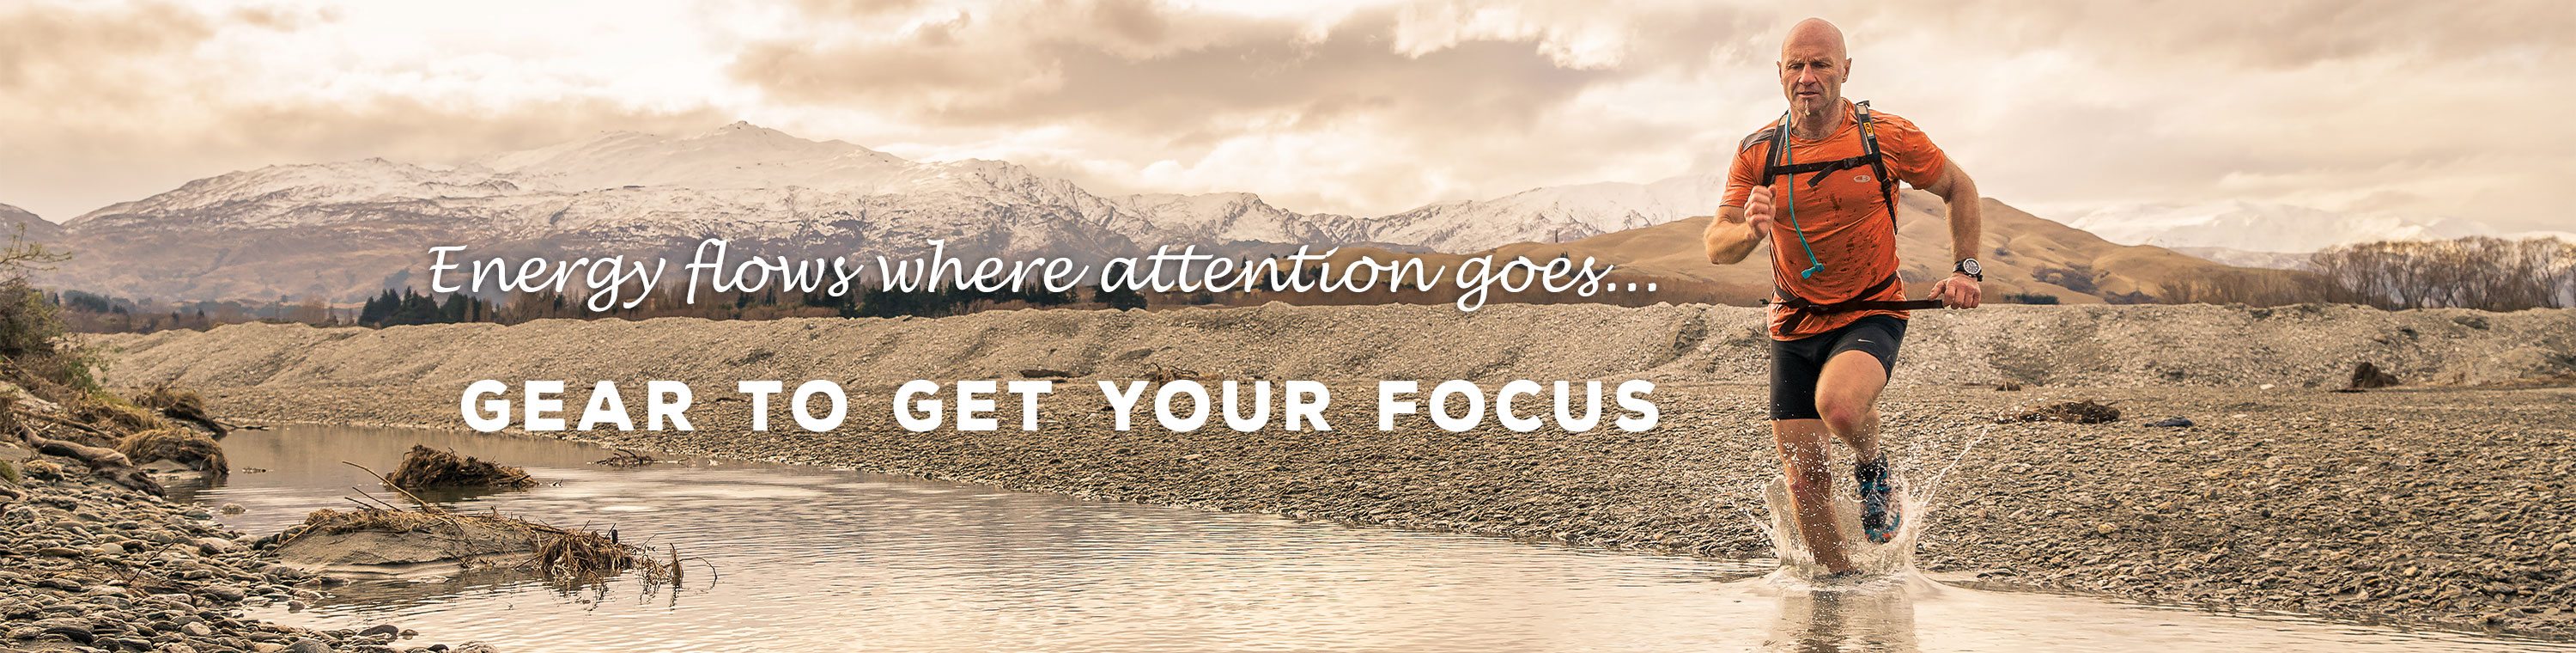 Energy Flows where attention goes - Gear to get your focus